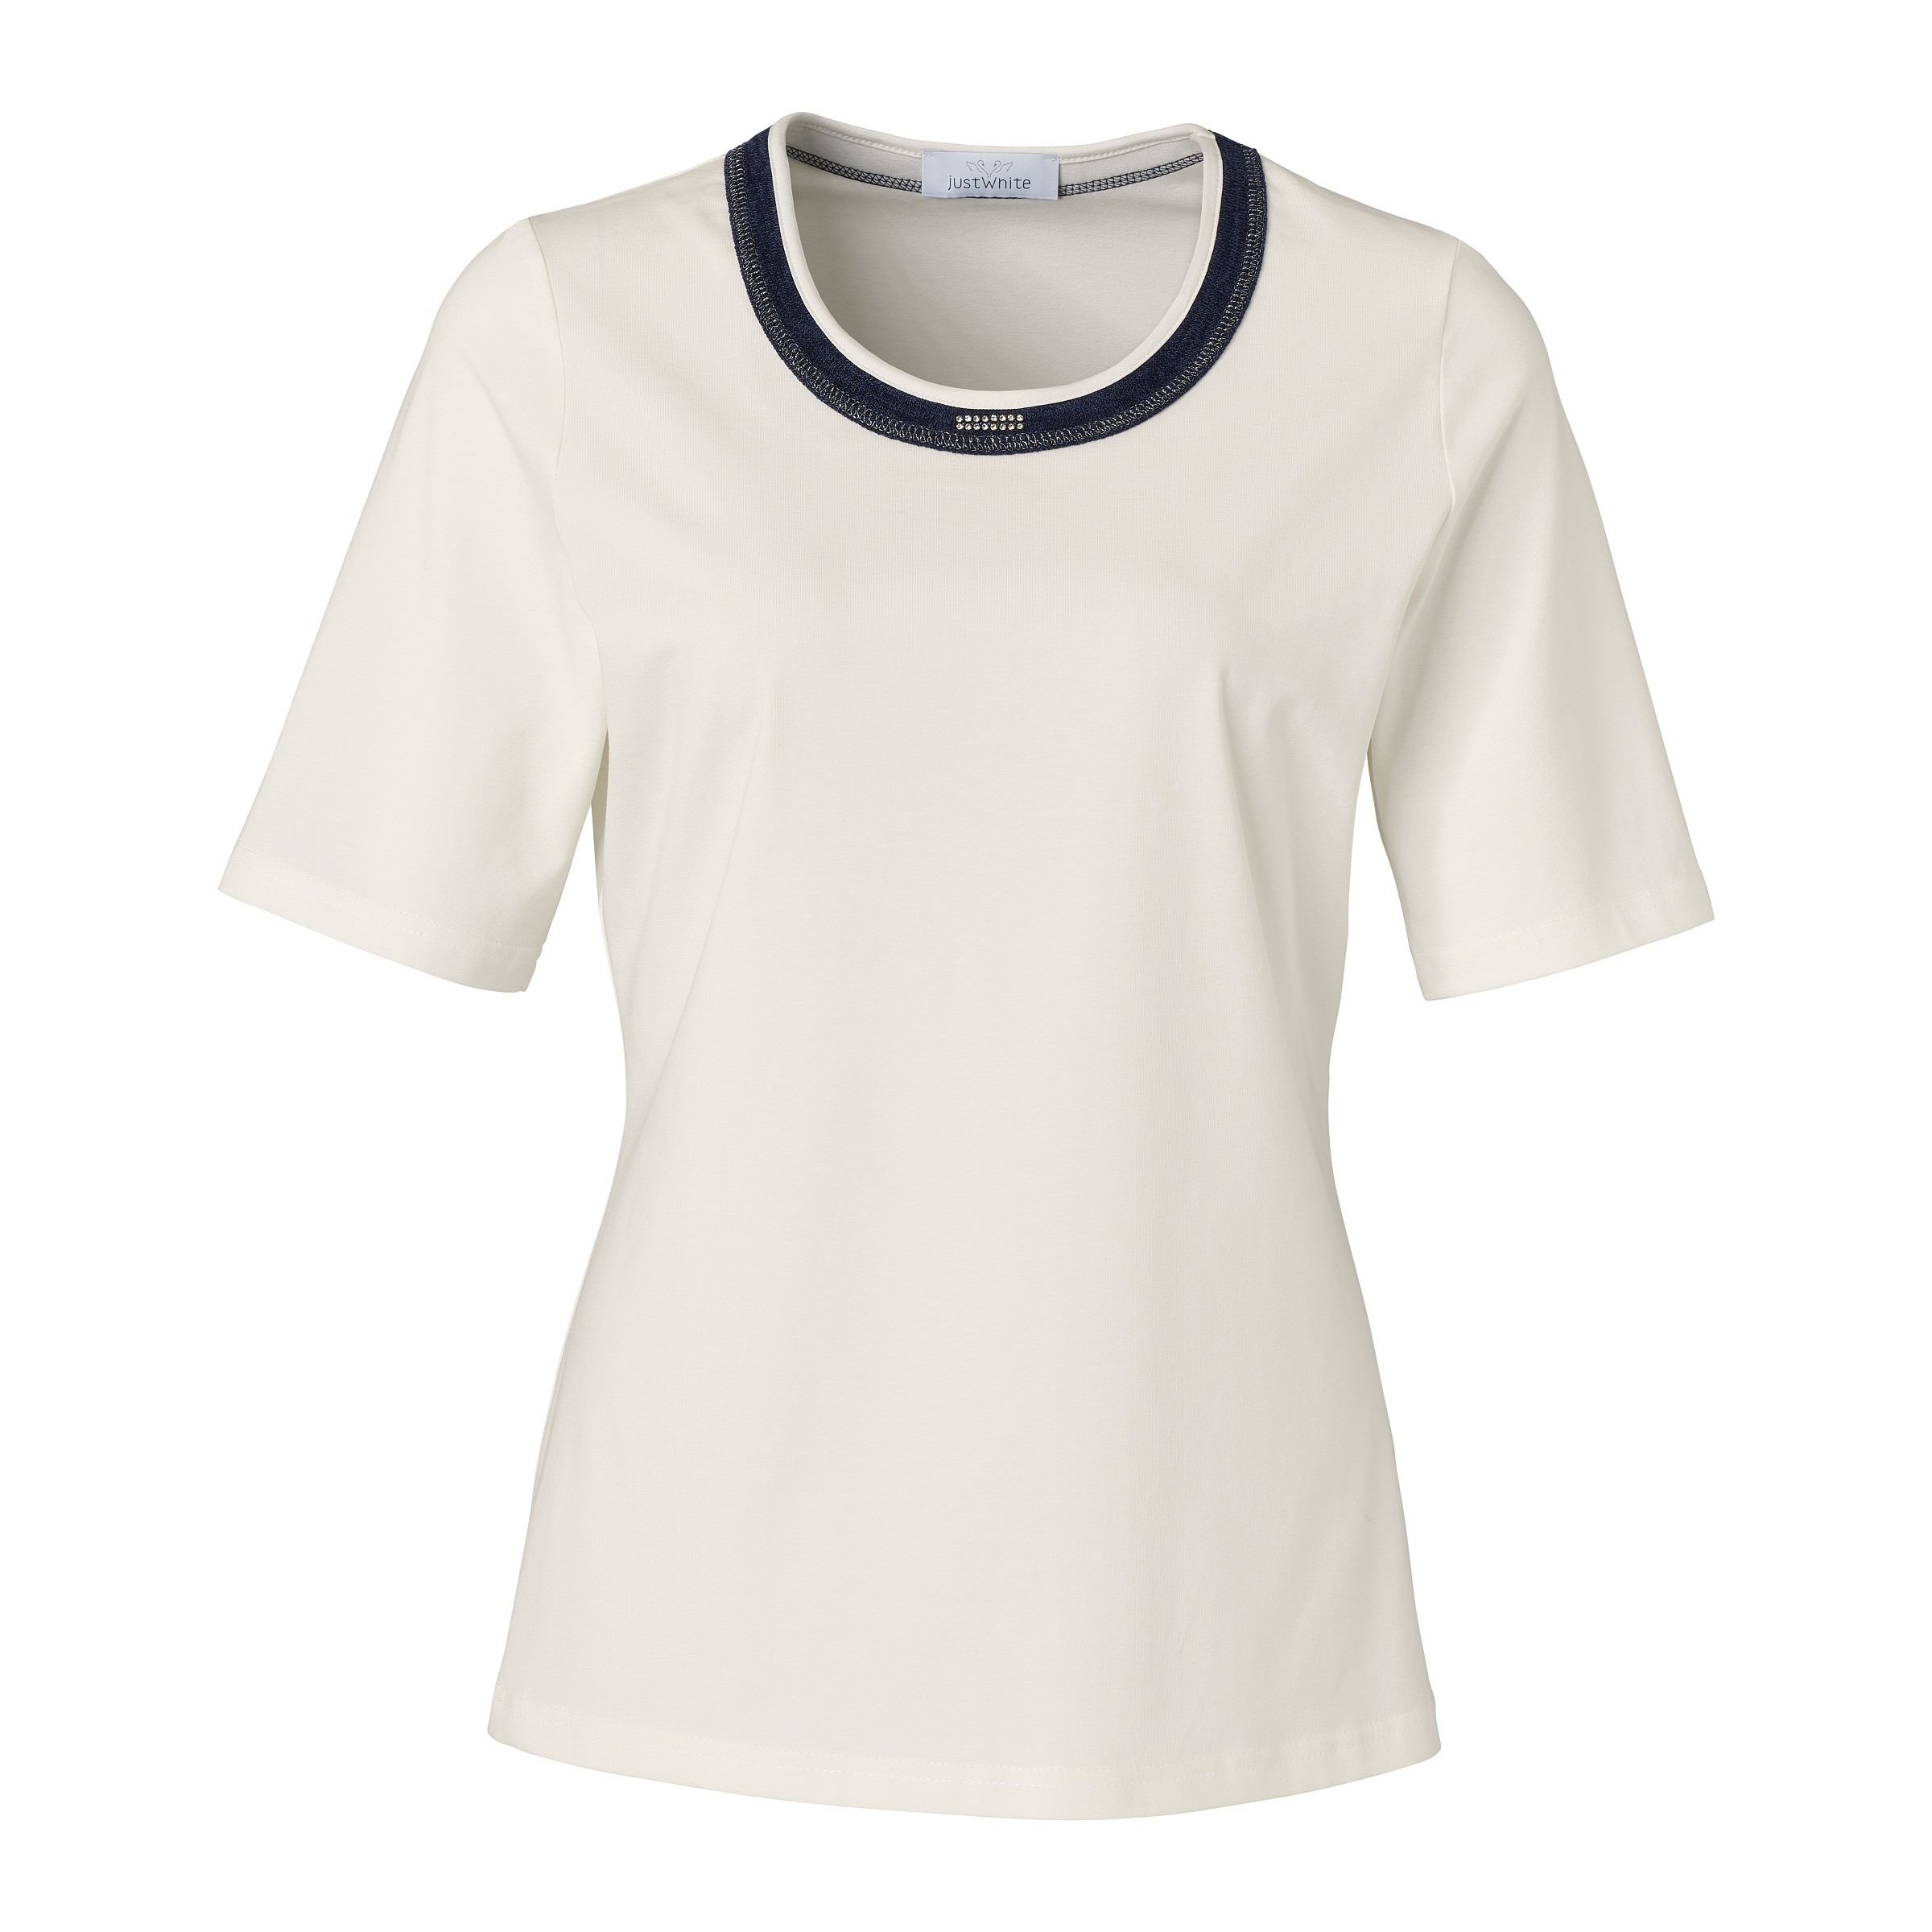 Piet Zoomers Se Just White Dames T shirt